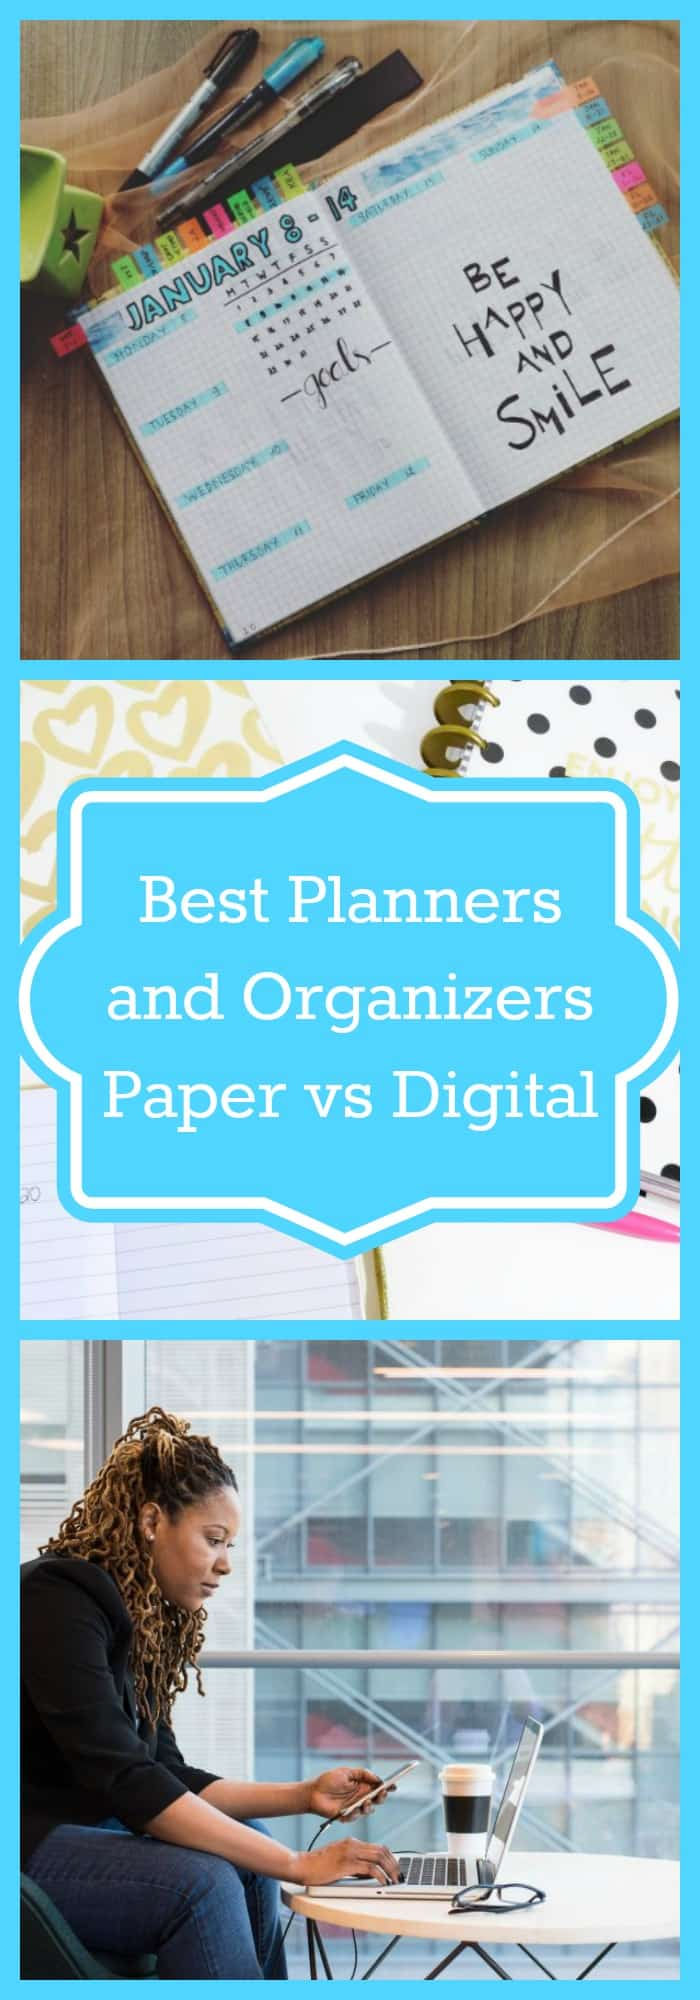 graphic regarding Digital Planners and Organizers named Suitable Planners and Organizers- Paper vs Electronic - The